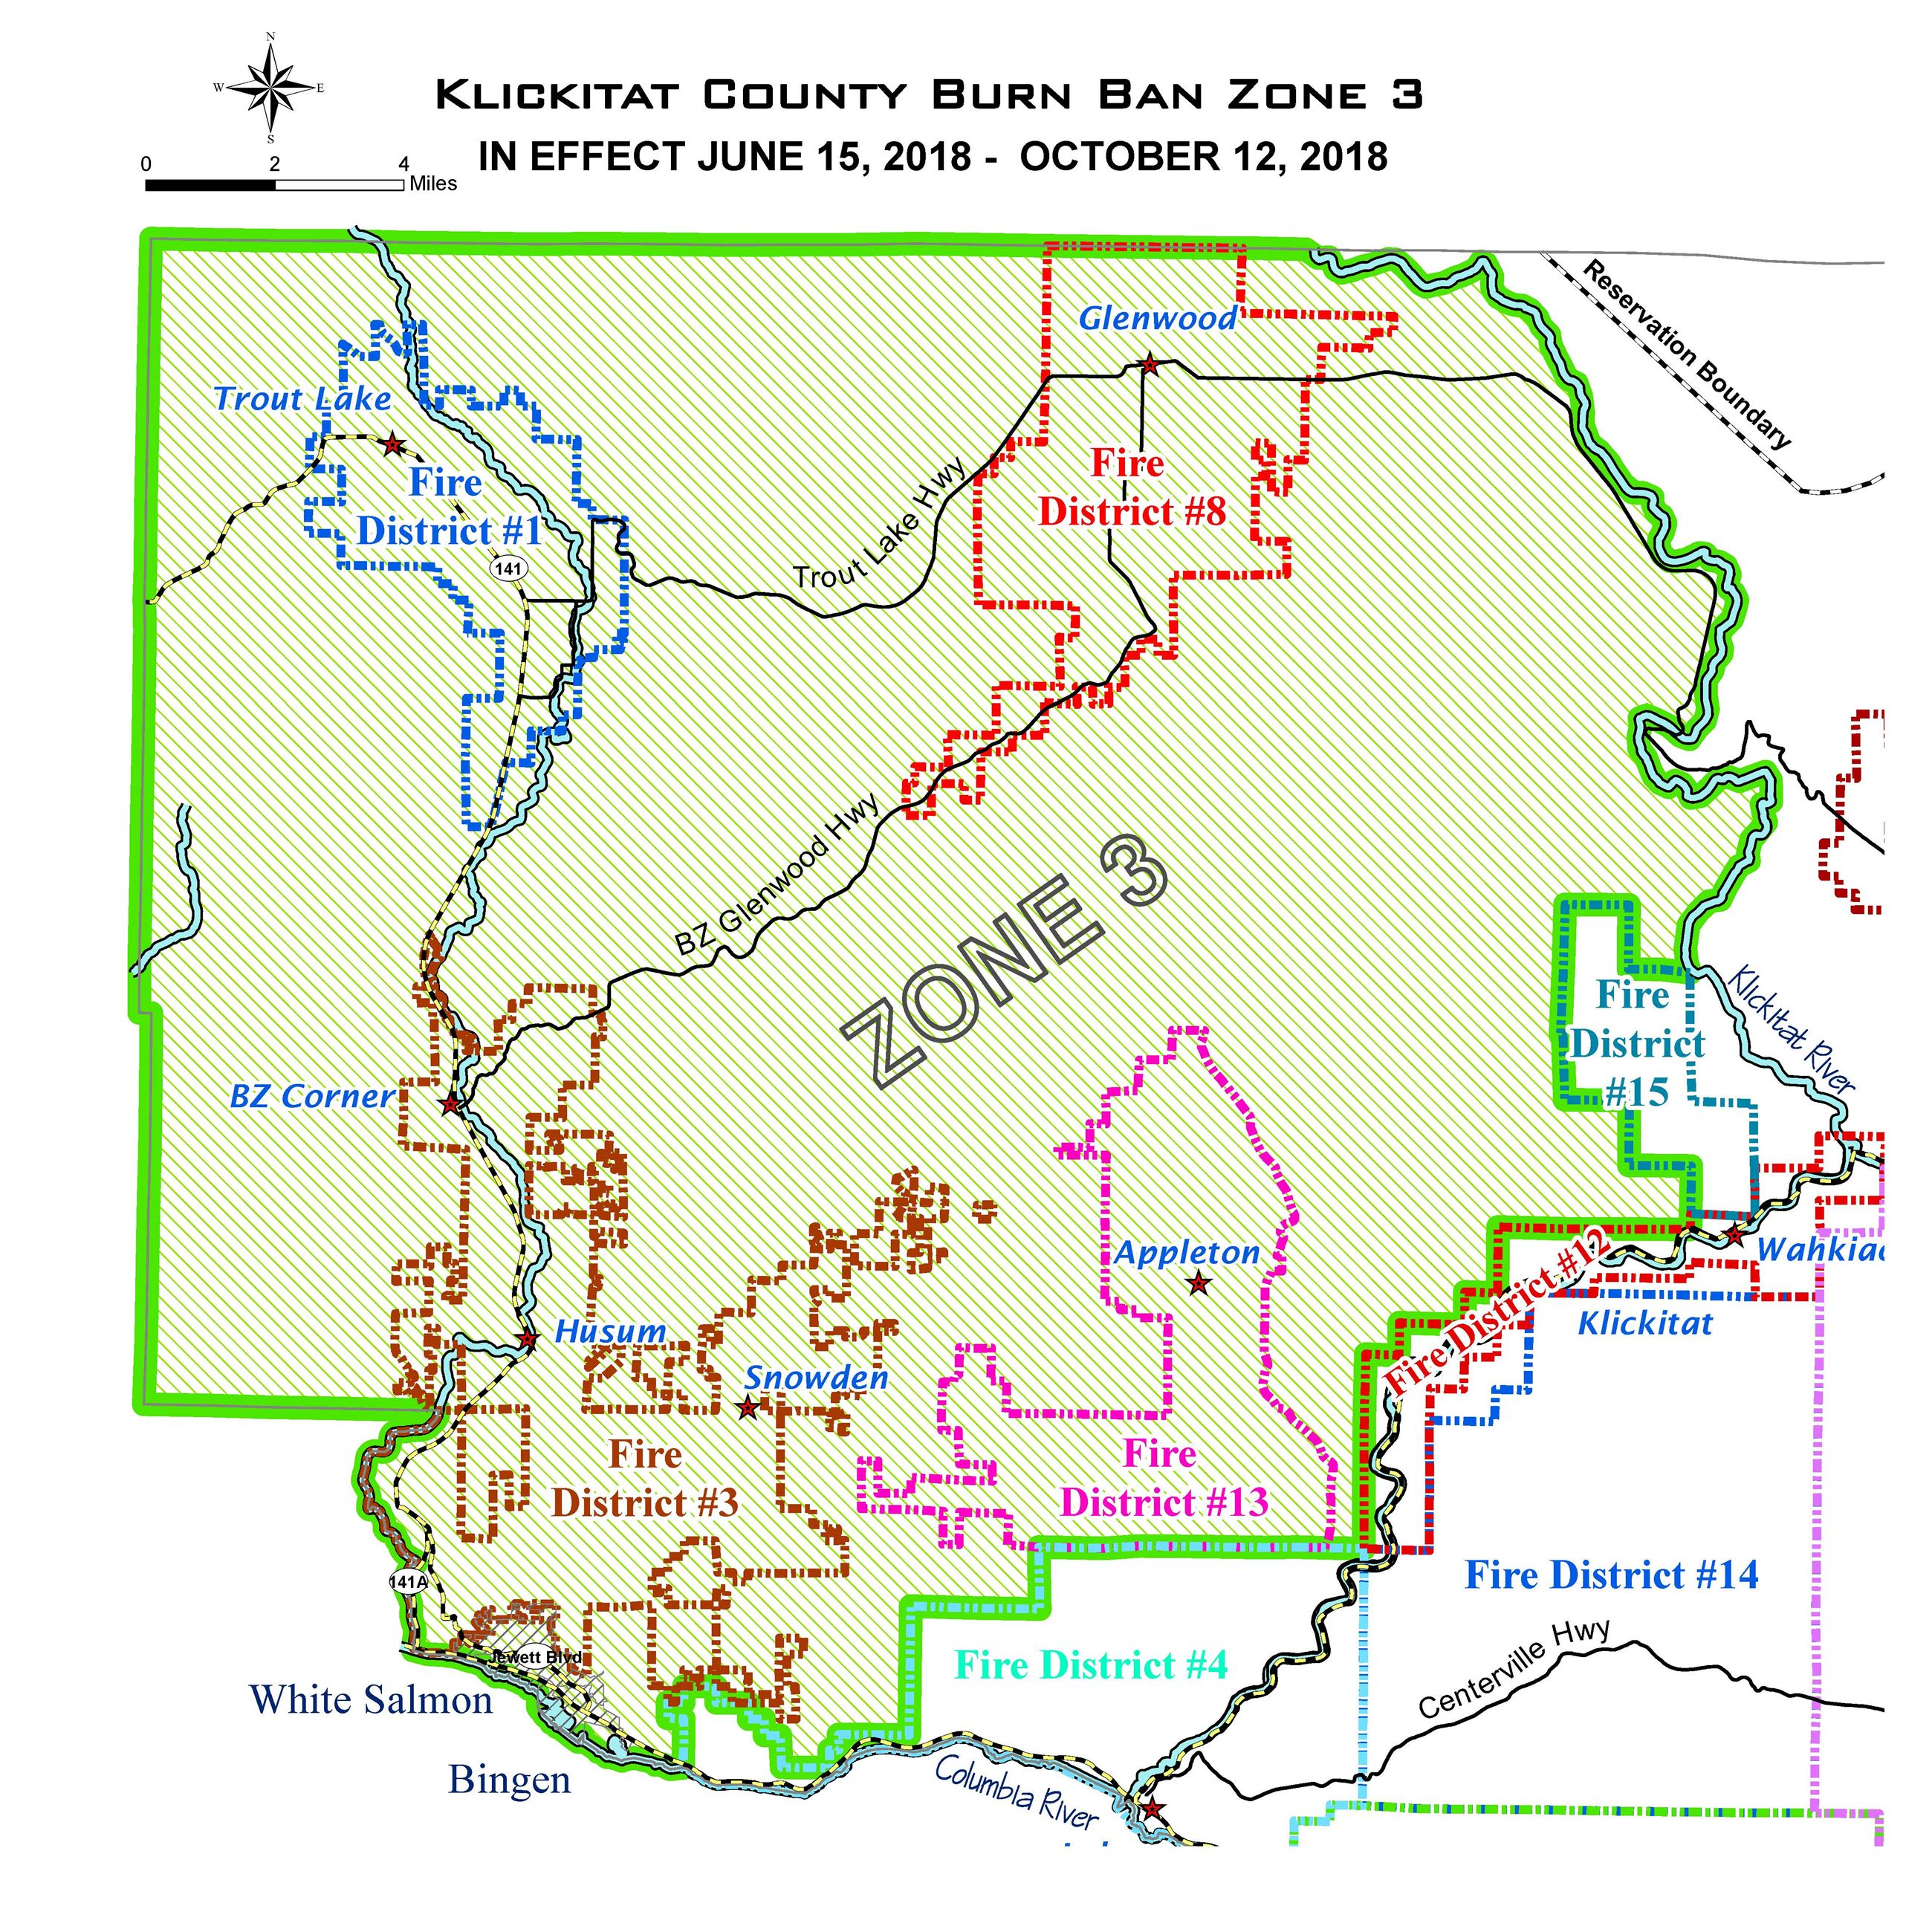 !!ZONE 3_KC Burn Ban_Extension_Oct 12 2018 Map